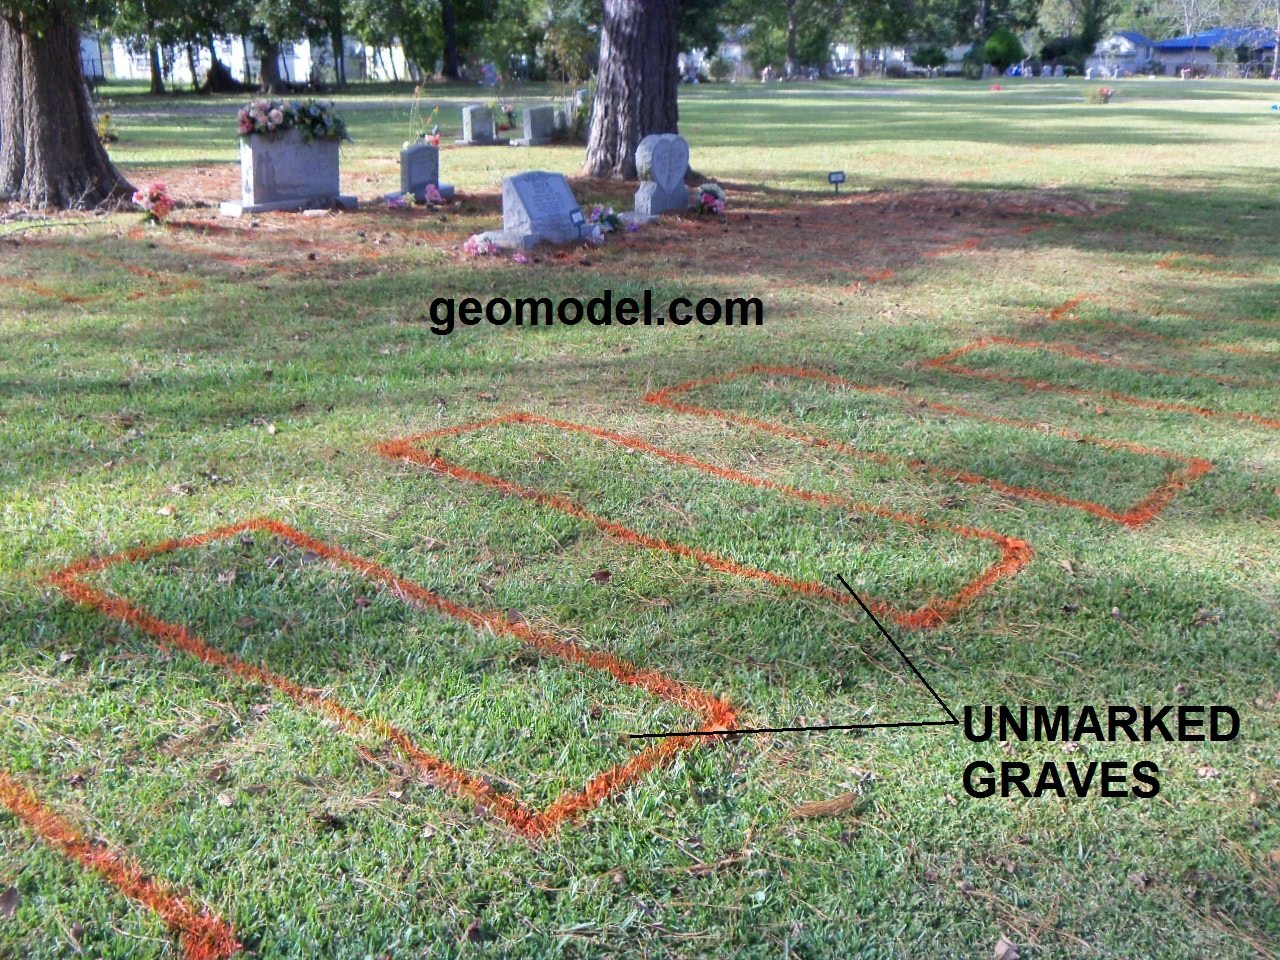 Cemetery_unmarked_graves7 to locate unmarked grave